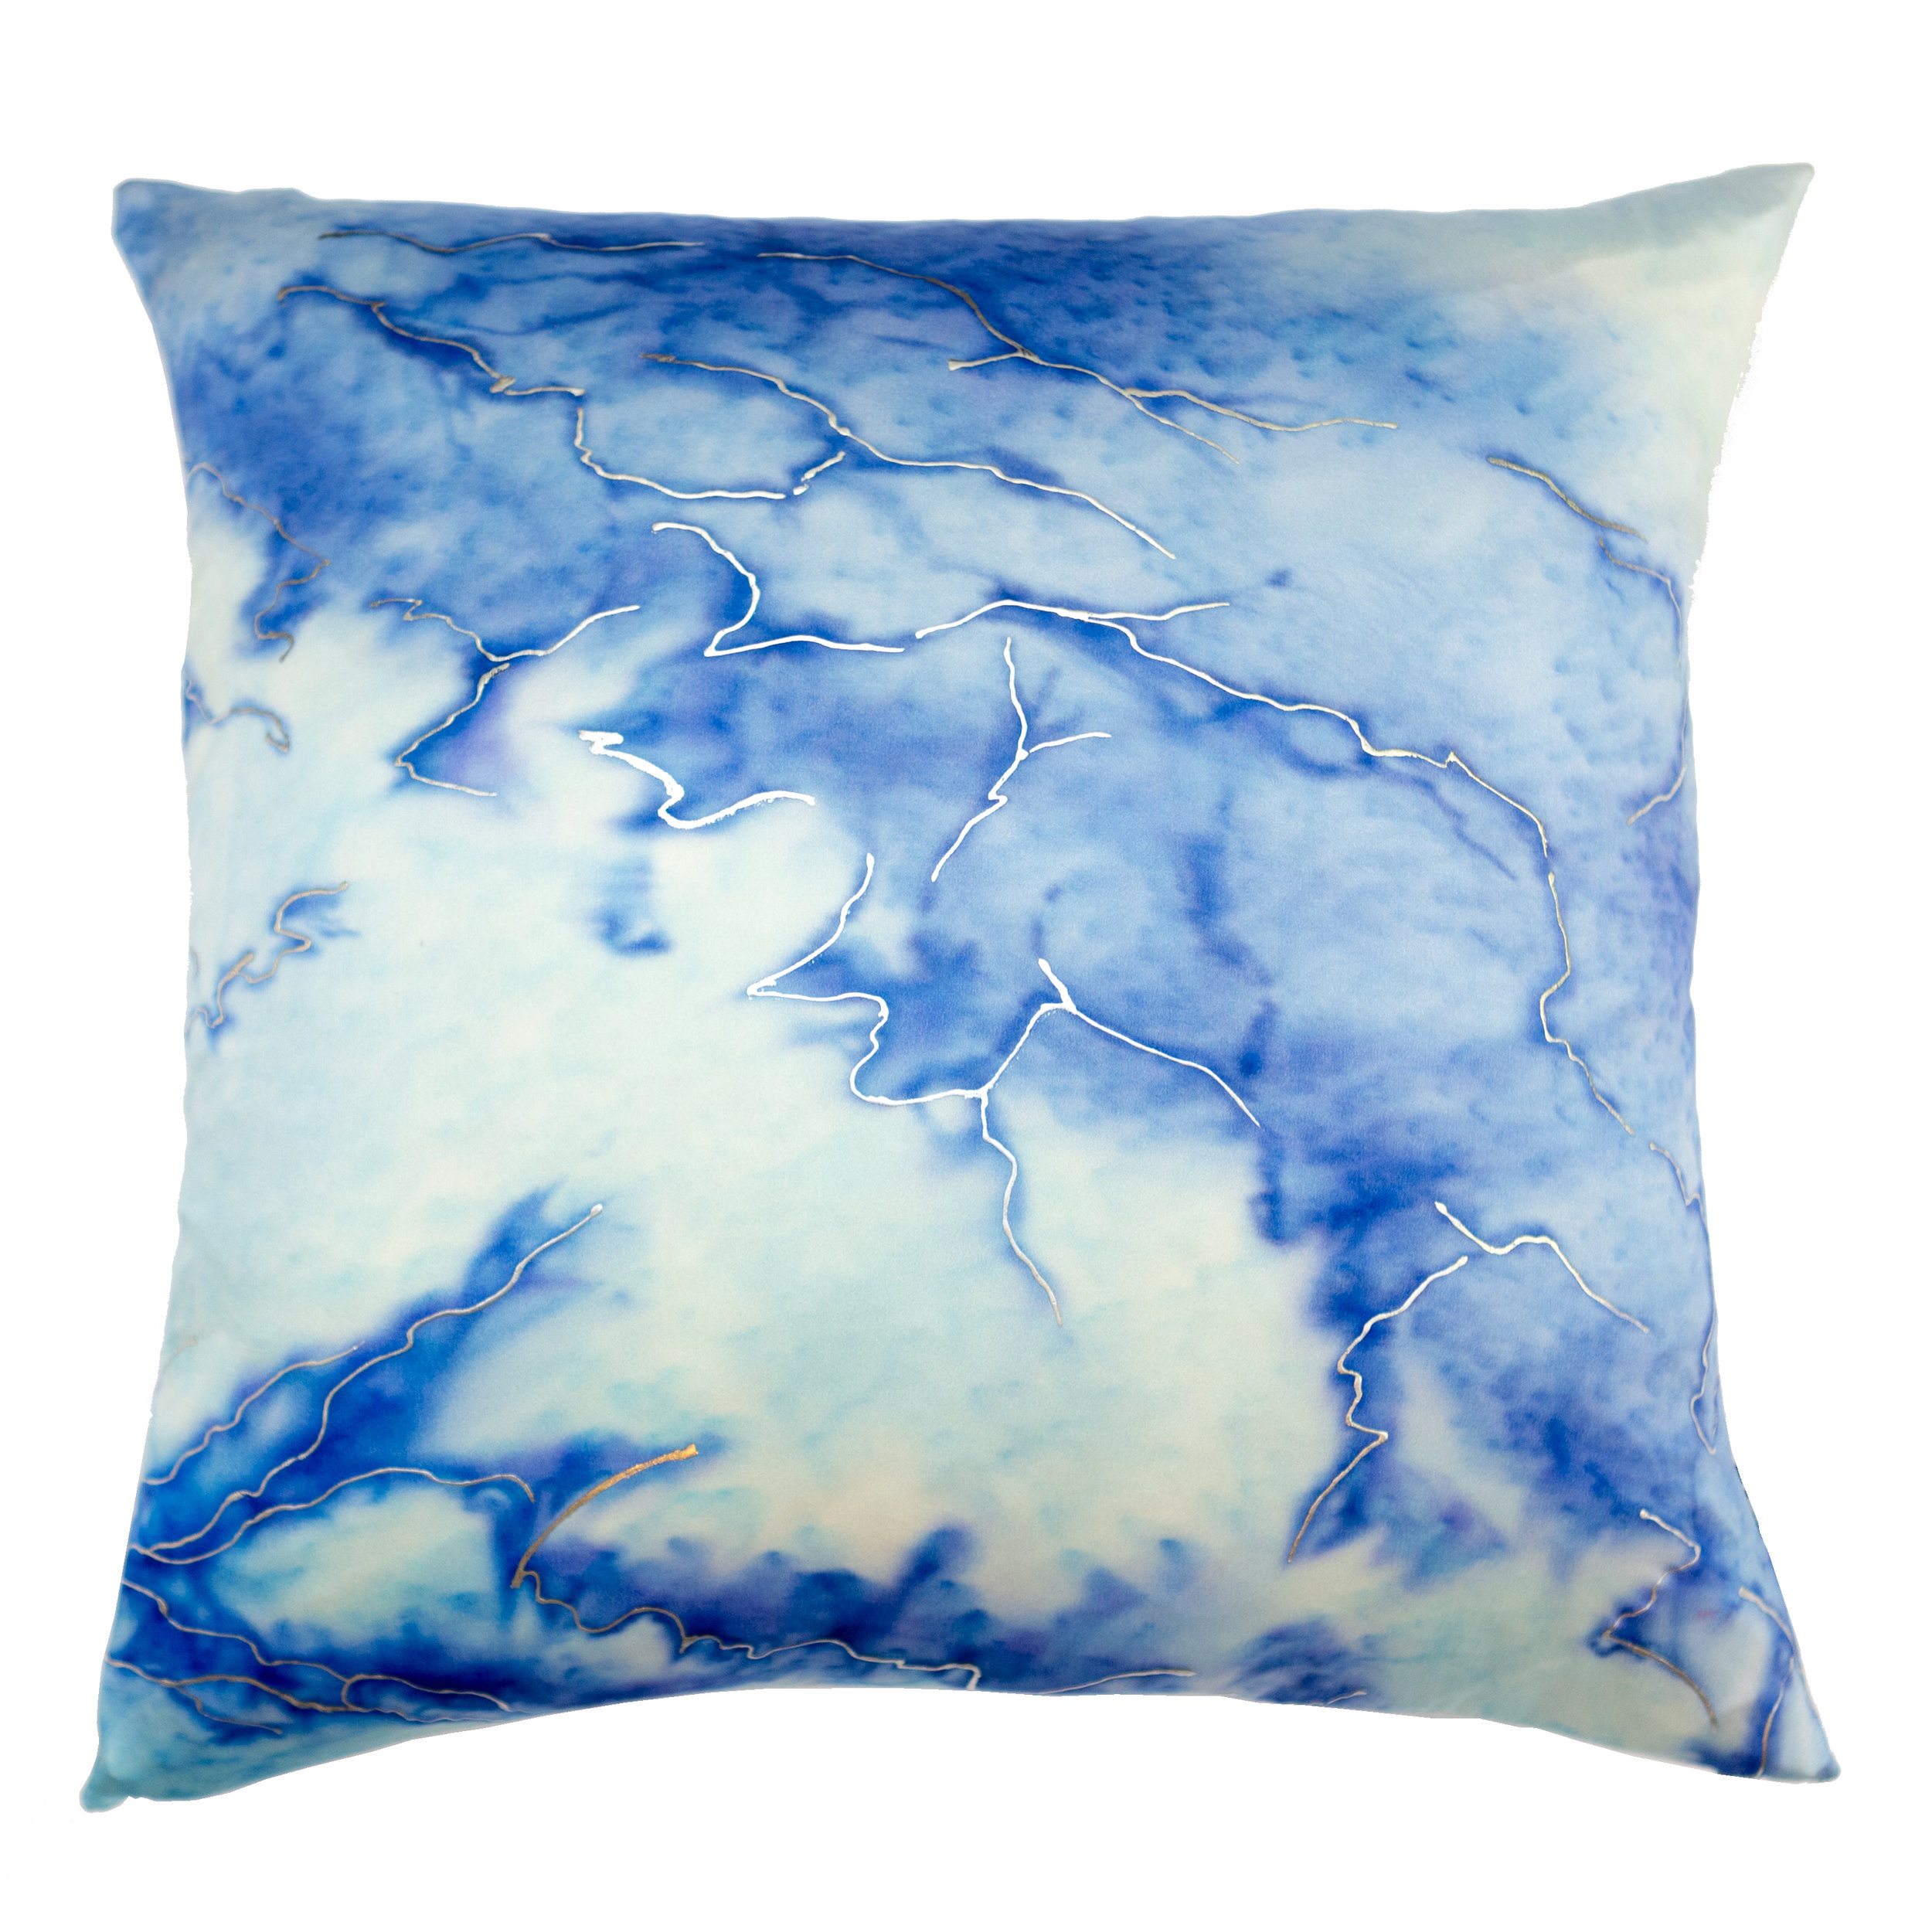 Marie-Burgos-Design.Glacier-2-Pillow.MBcollection.jpg